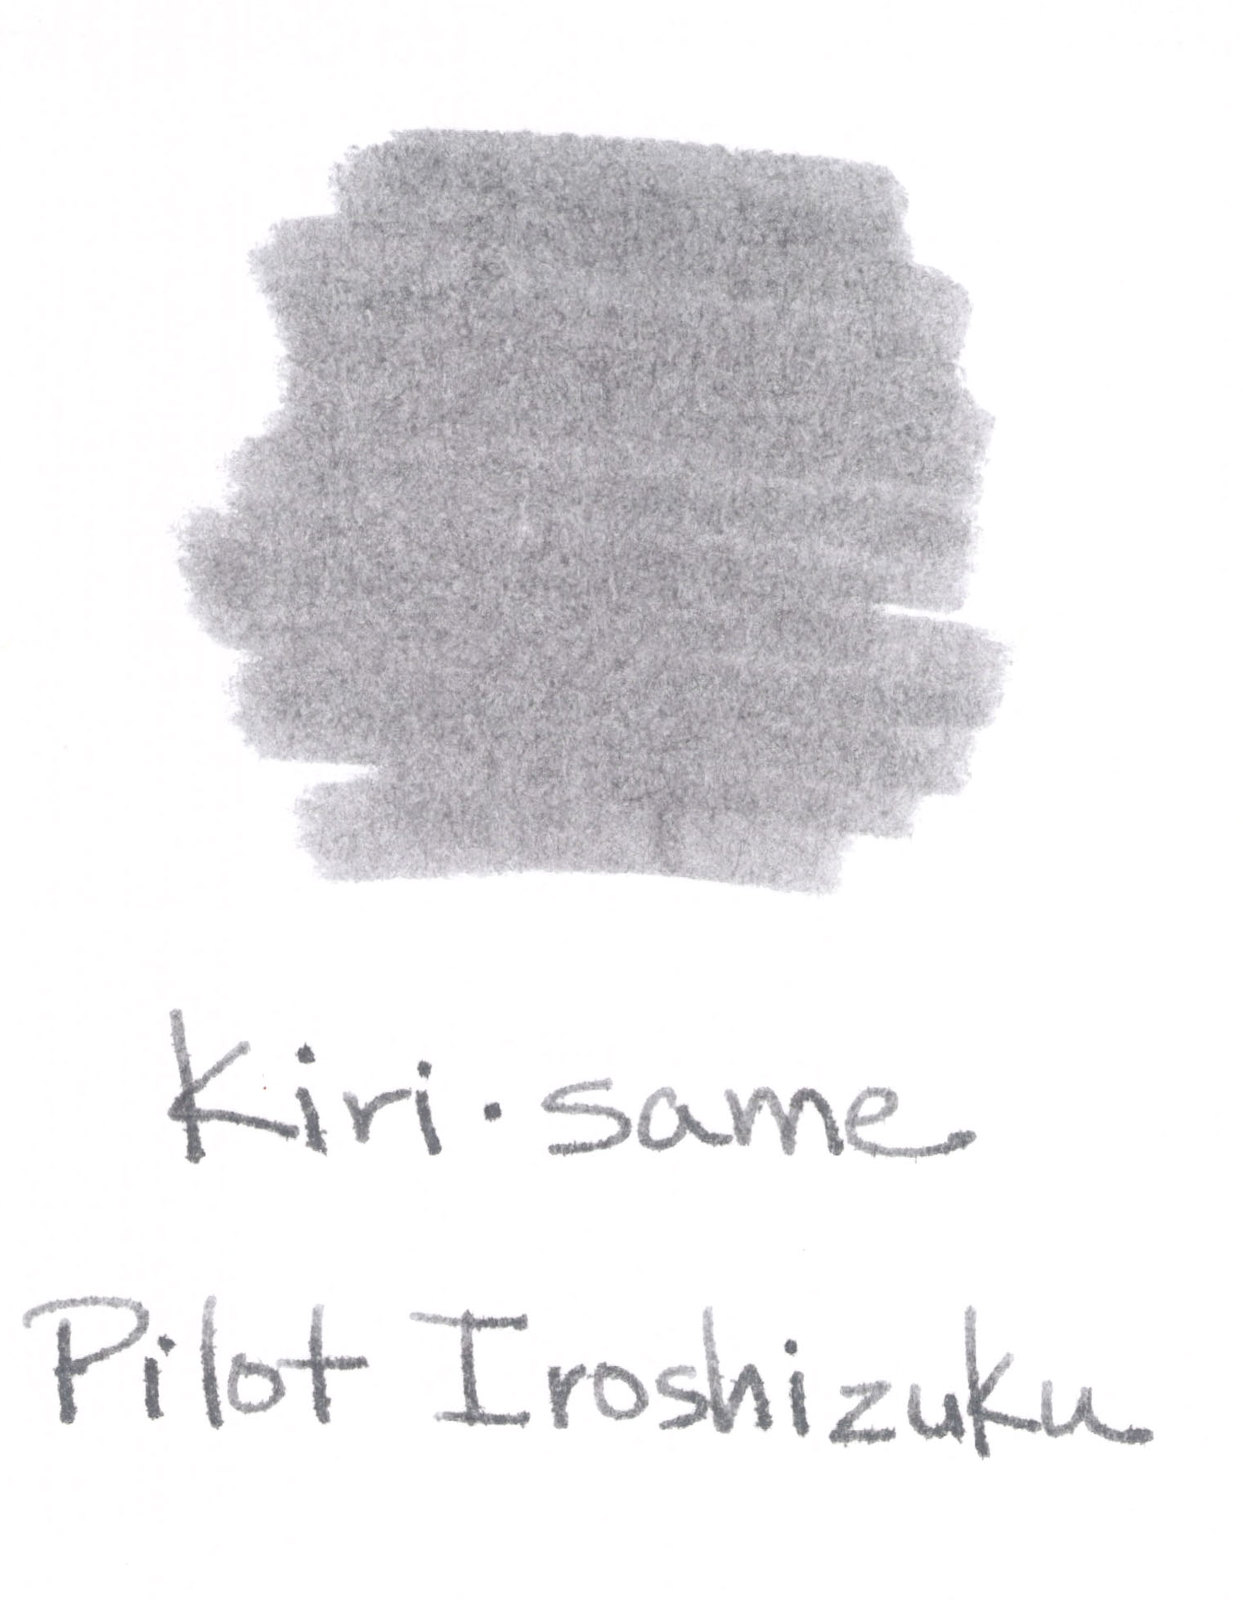 fifty shades of grey page  pilot iroshizuku kiri same delicate hints of red